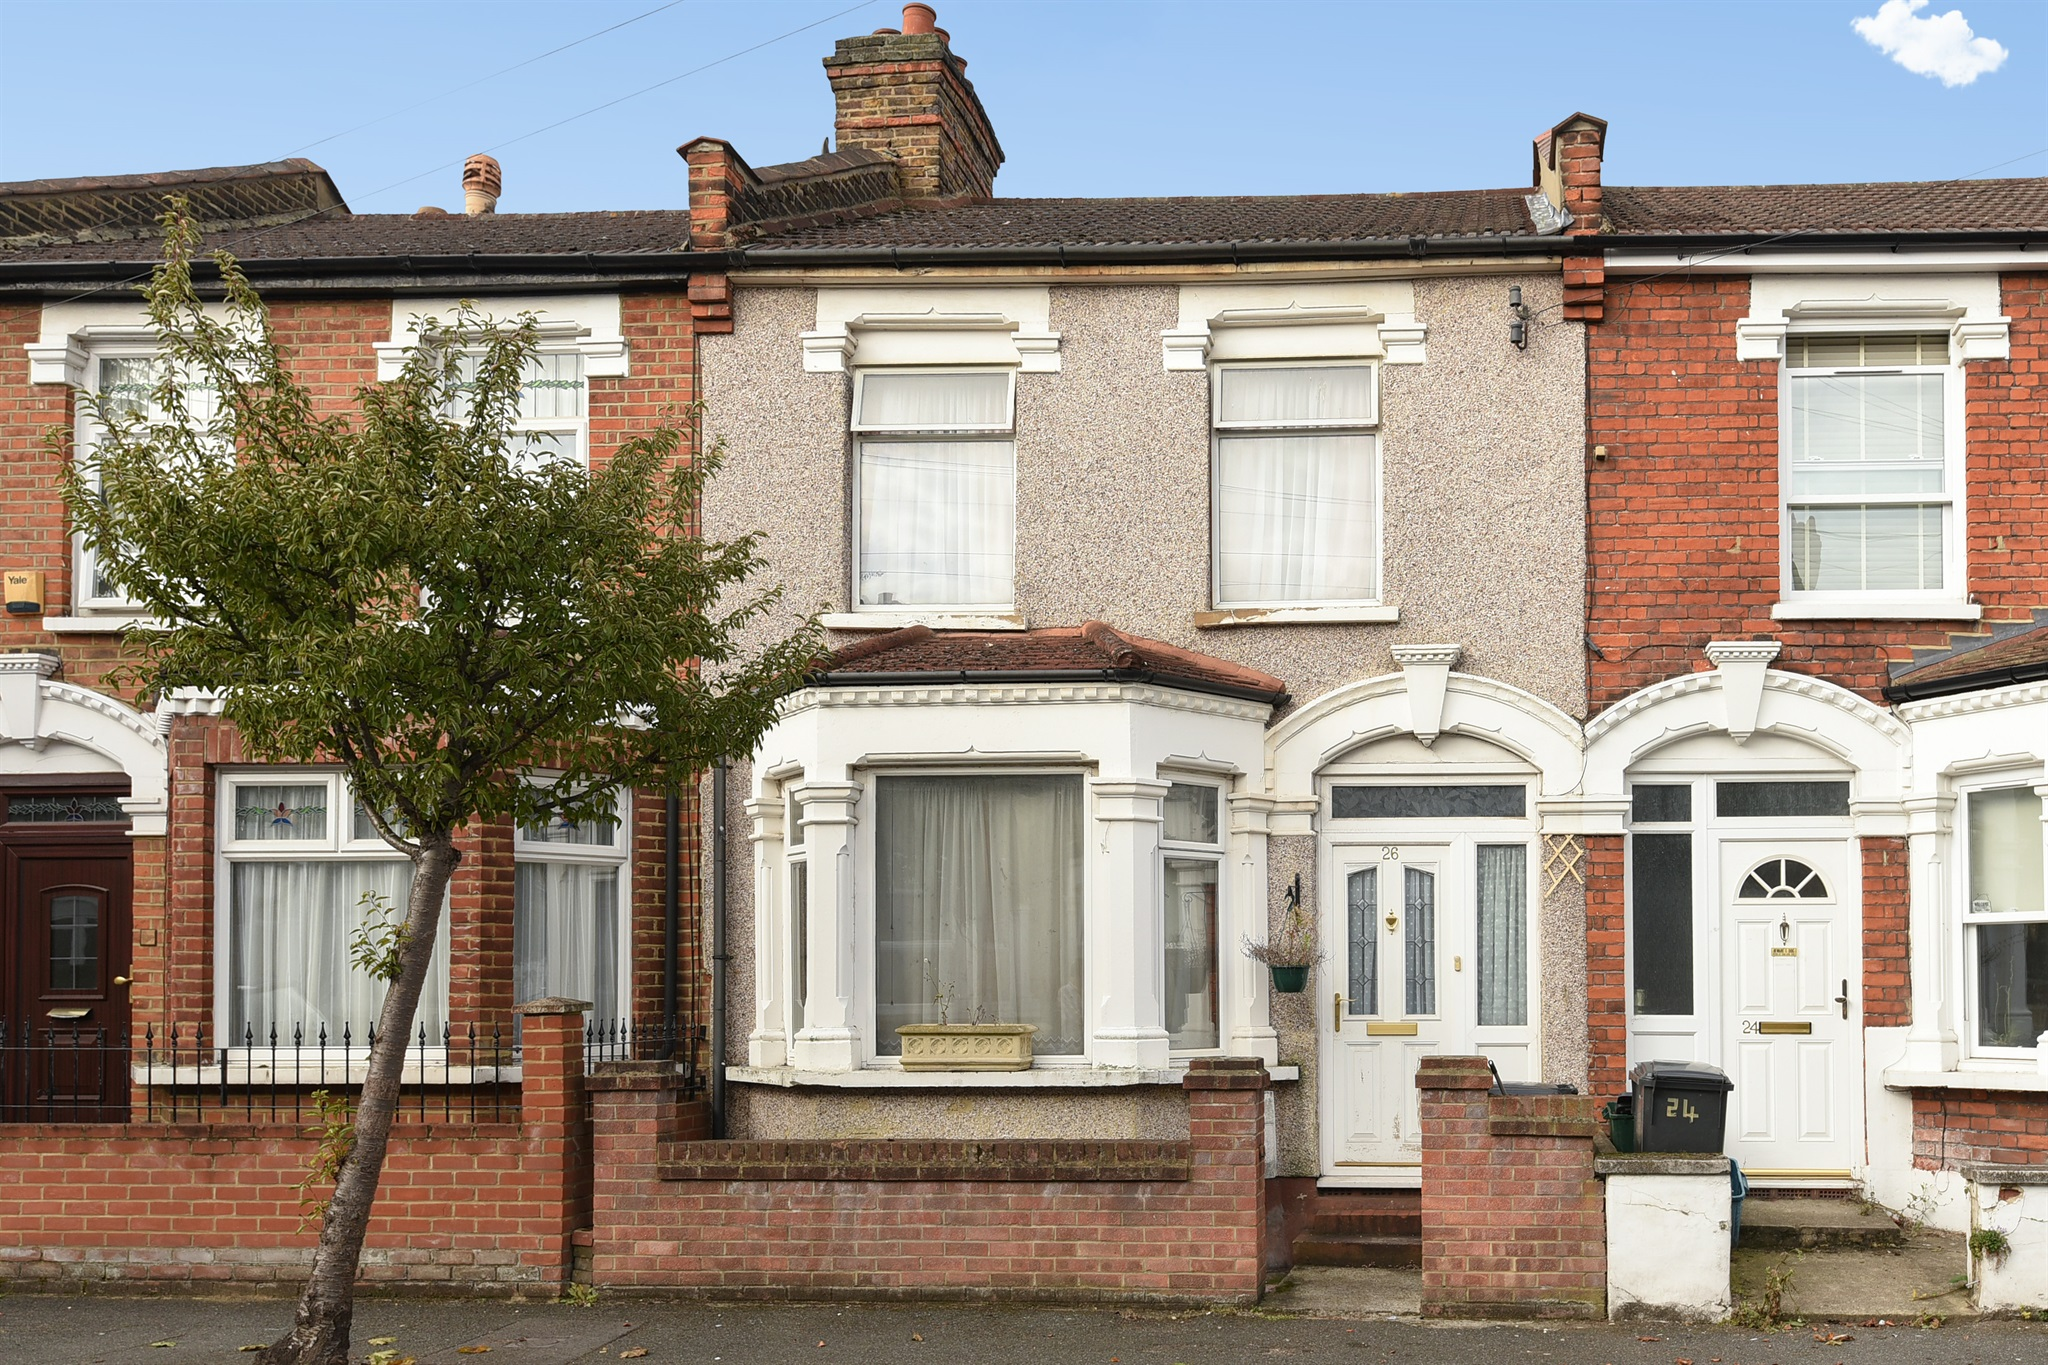 3 bedroom terraced house for sale in aylett road south